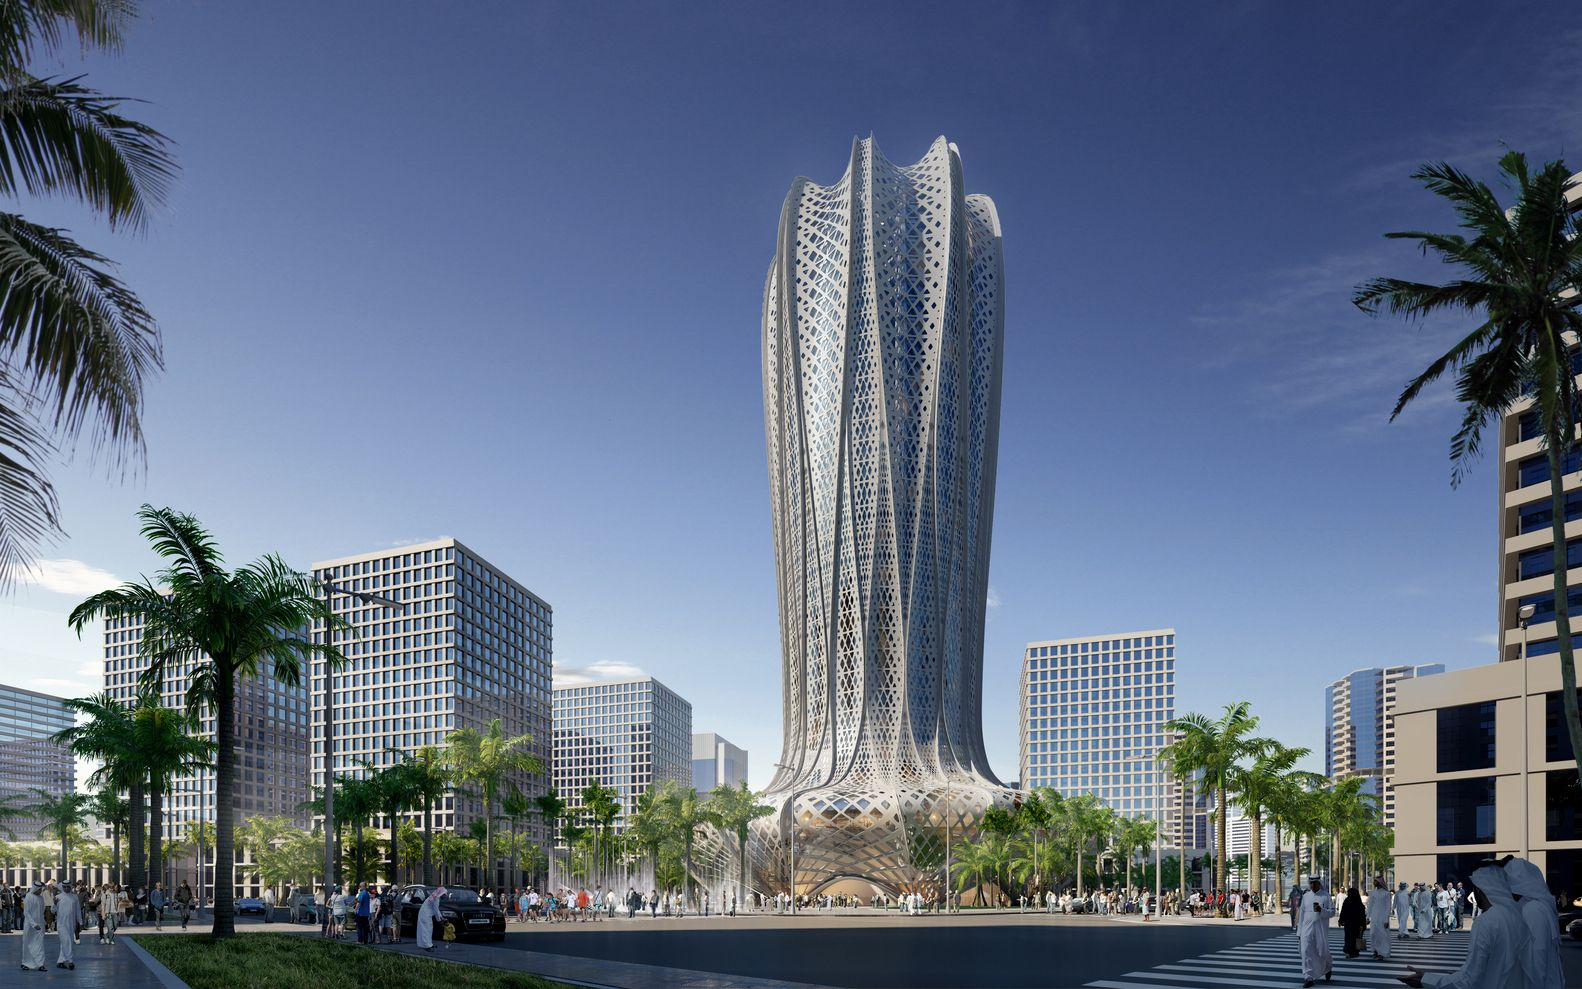 of Zaha Hadid Architects to Design Hotel and Residential Tower in ...